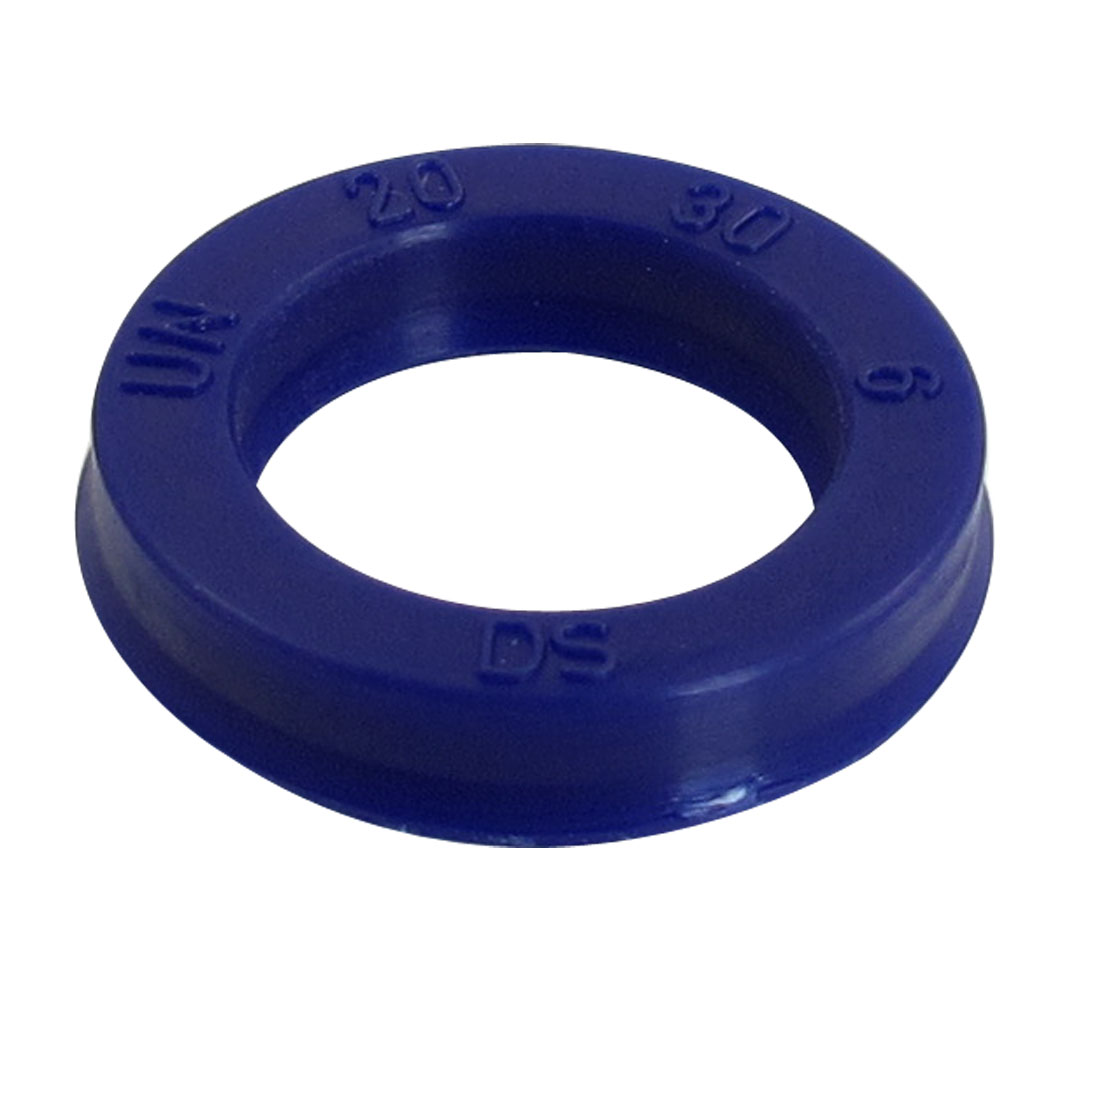 Blue PU 20mm x 30mm x 6mm Double Lip Sealing Cushion Dust Seal Ring